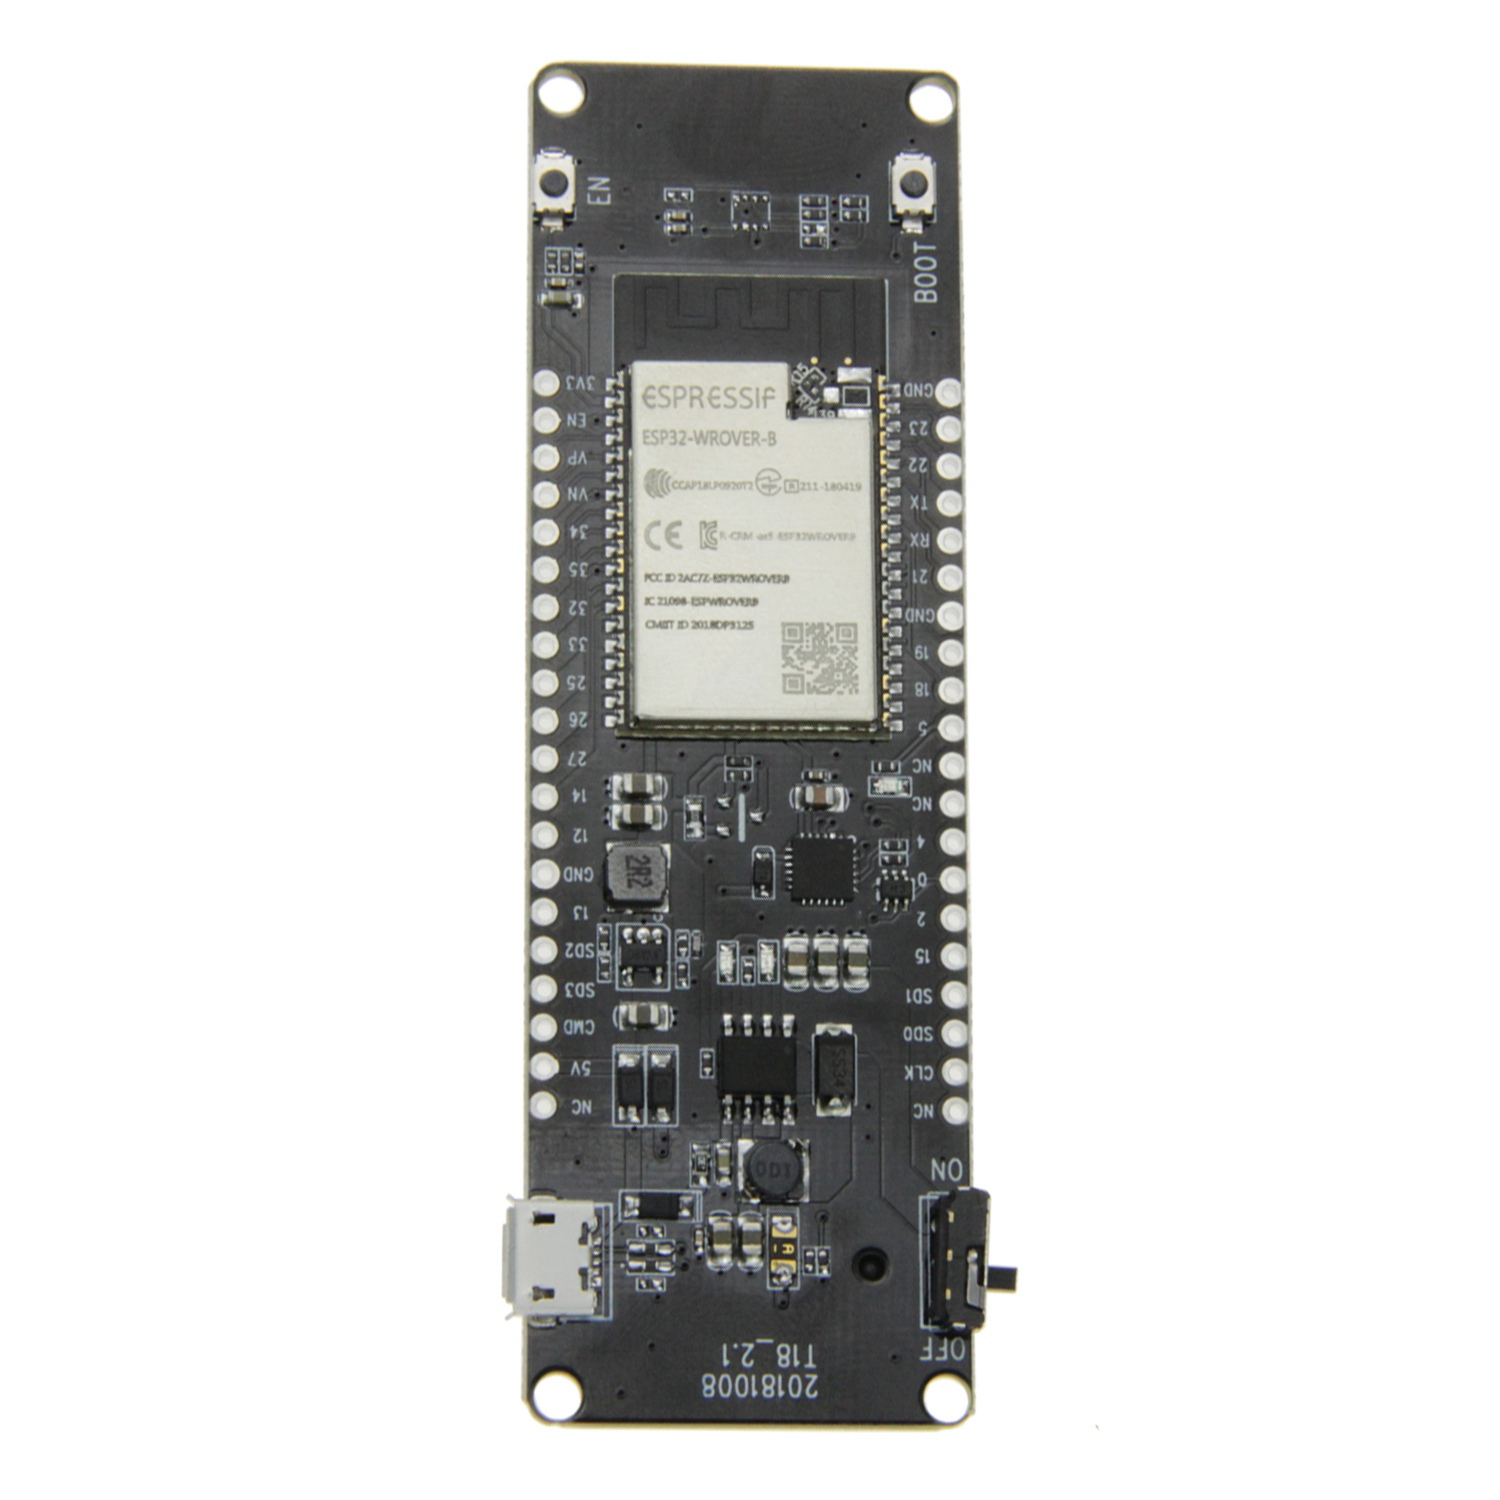 Ttgo T-Energy Esp32 8Mbyte Psram Esp32-Wrover-B Wifi & Bluetooth Module 18650 Battery Development Board